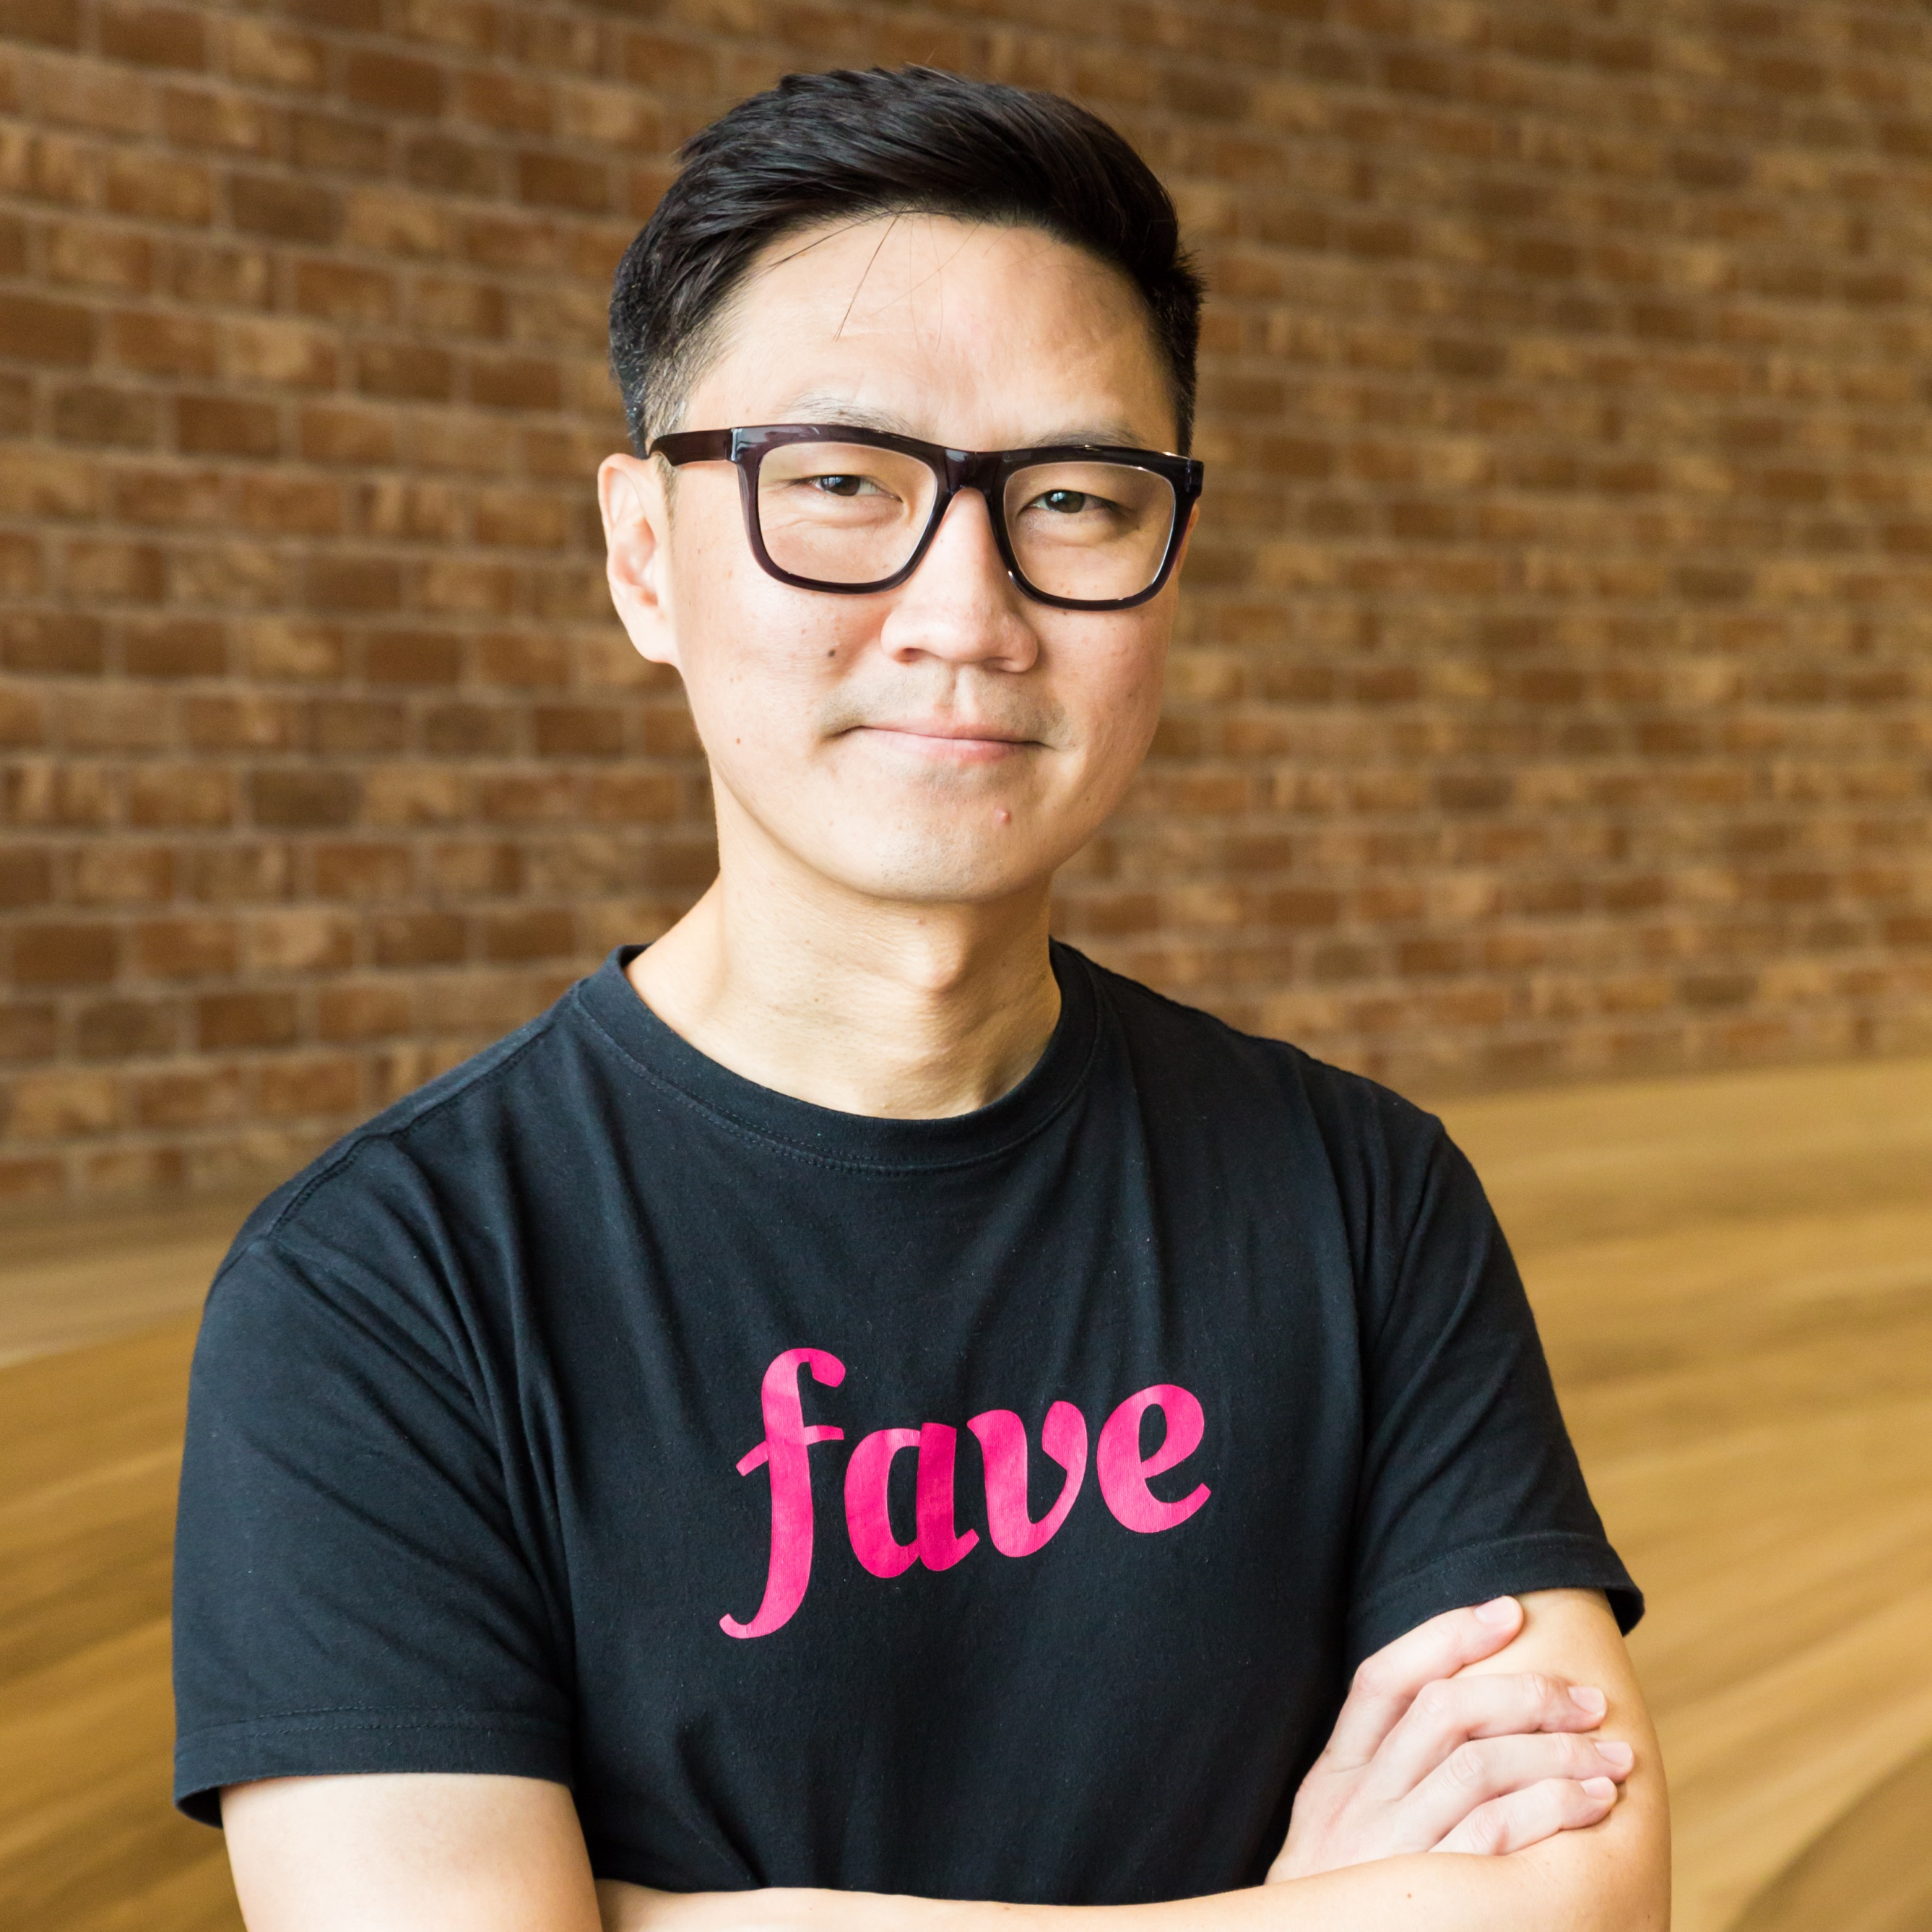 Mr Aik-Phong Ng, Managing Director at Fave Singapore & FavePay